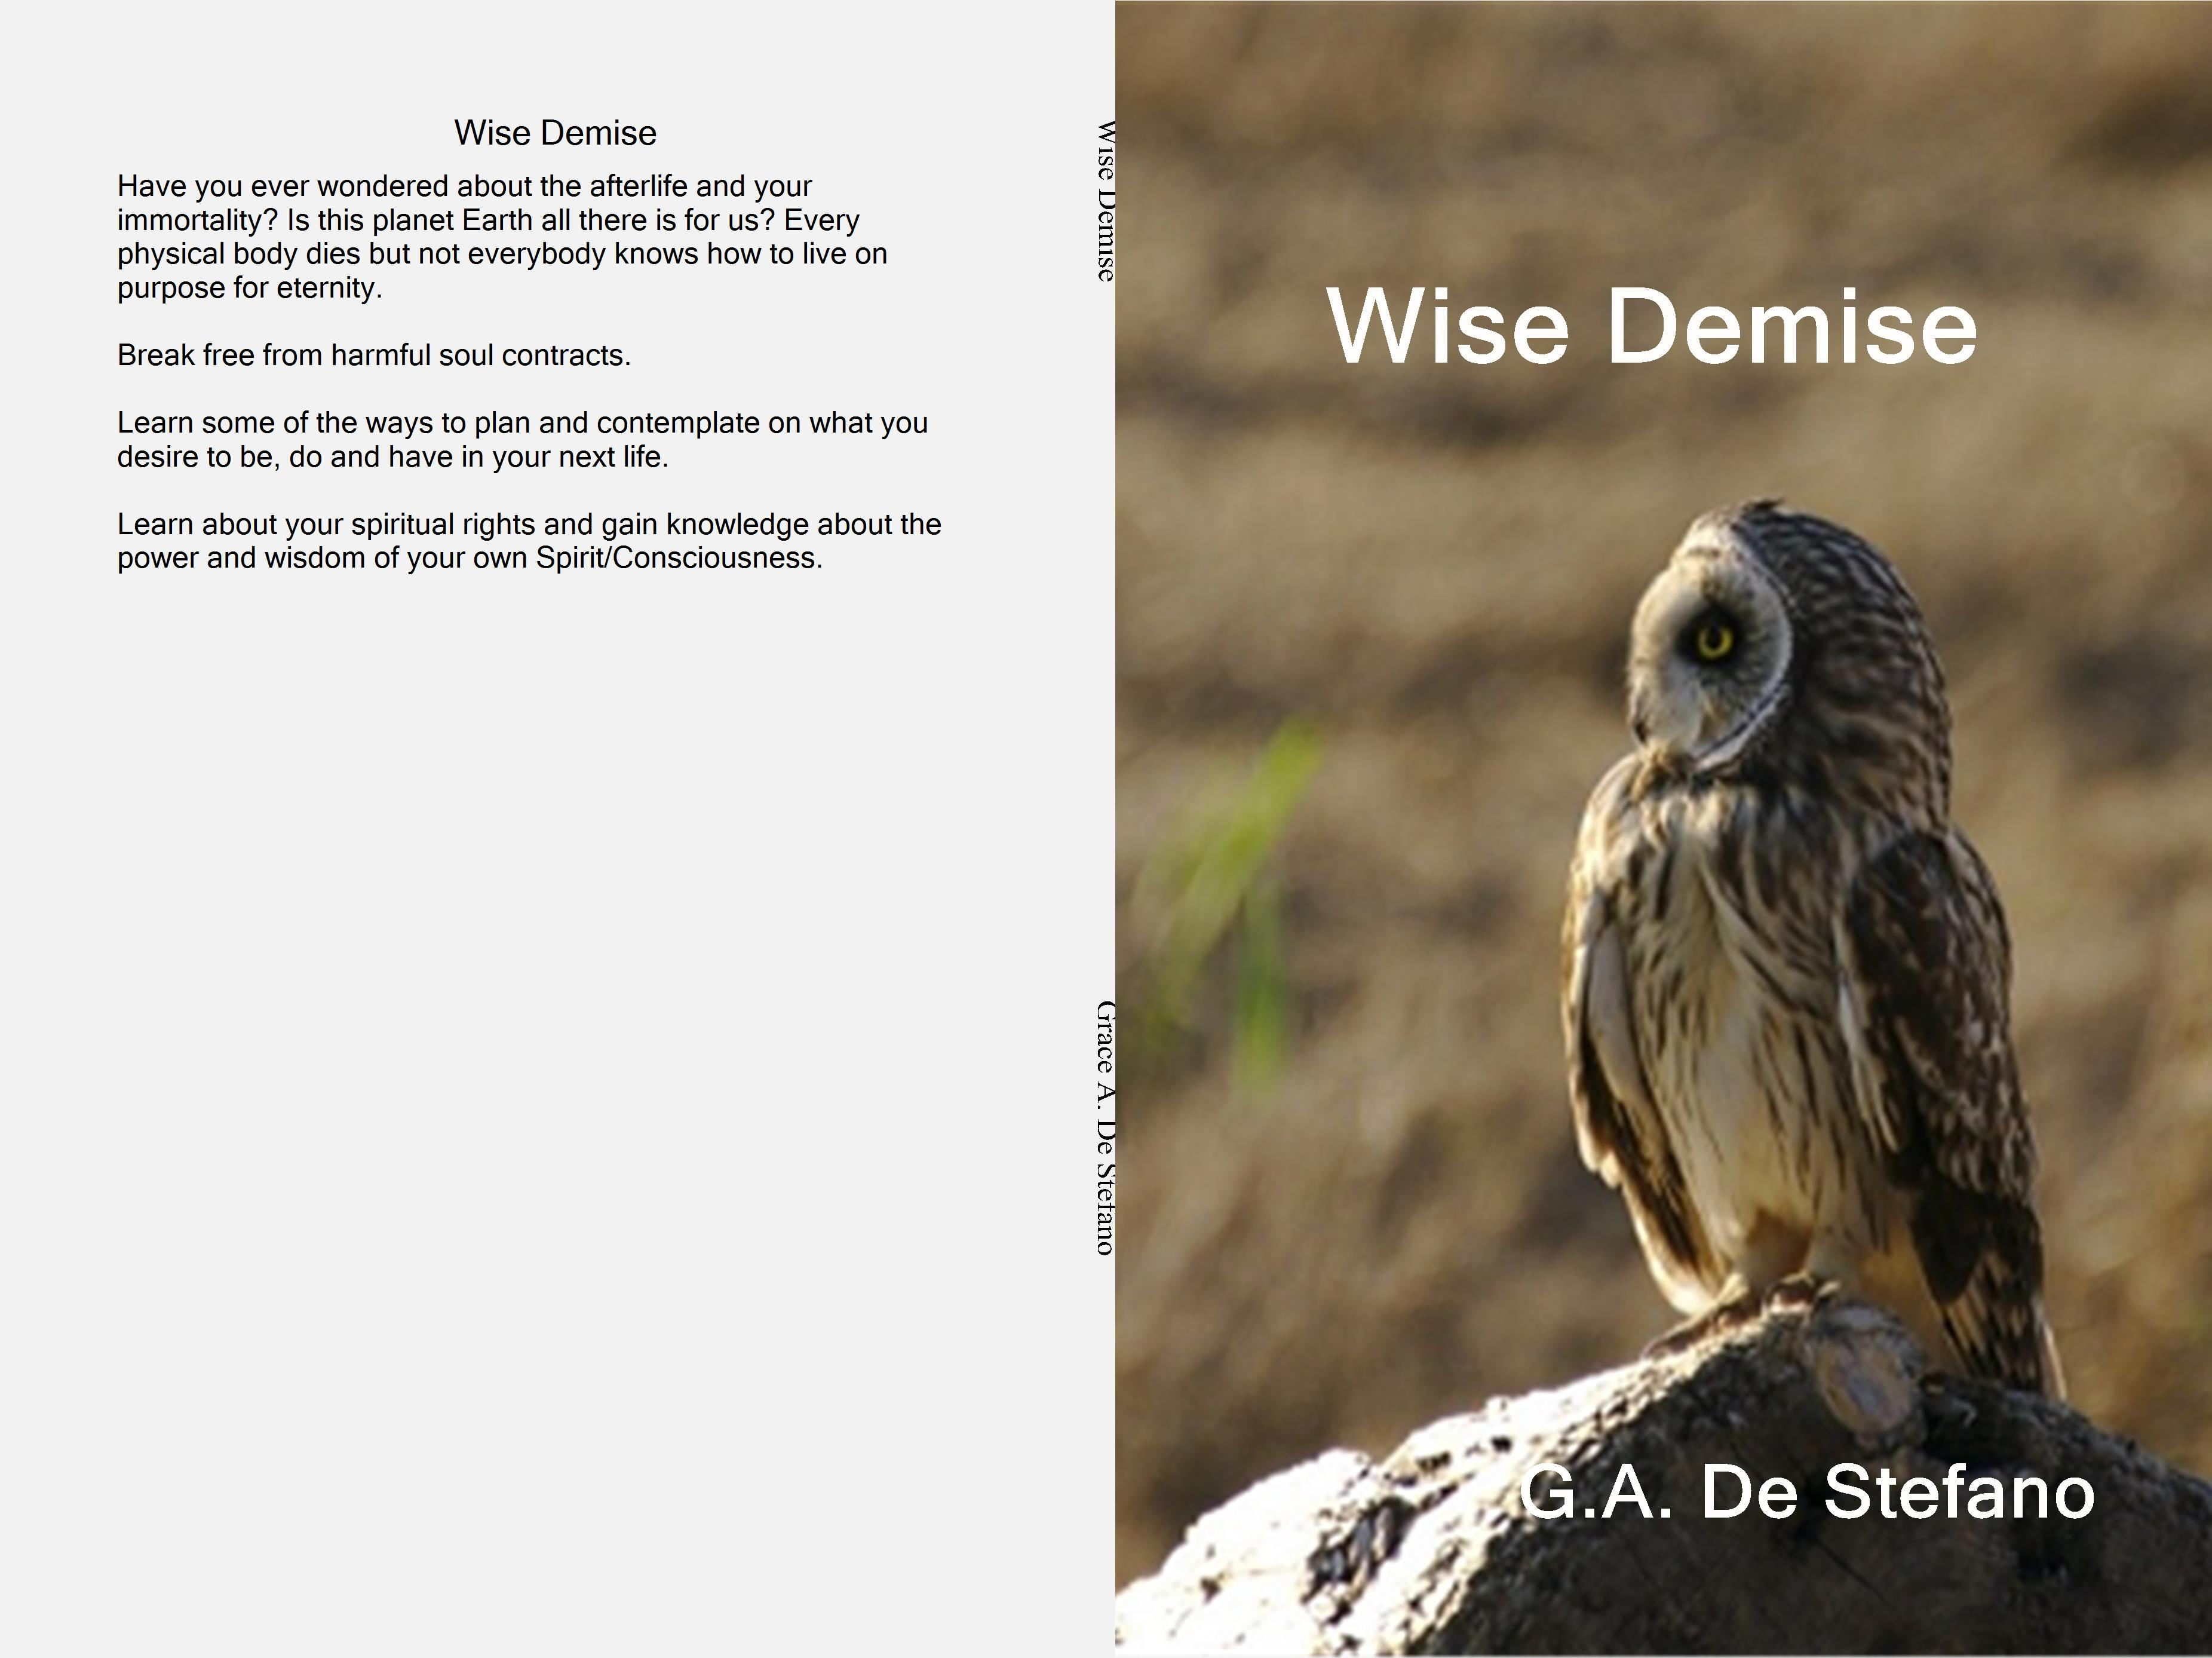 Wise Demise cover image